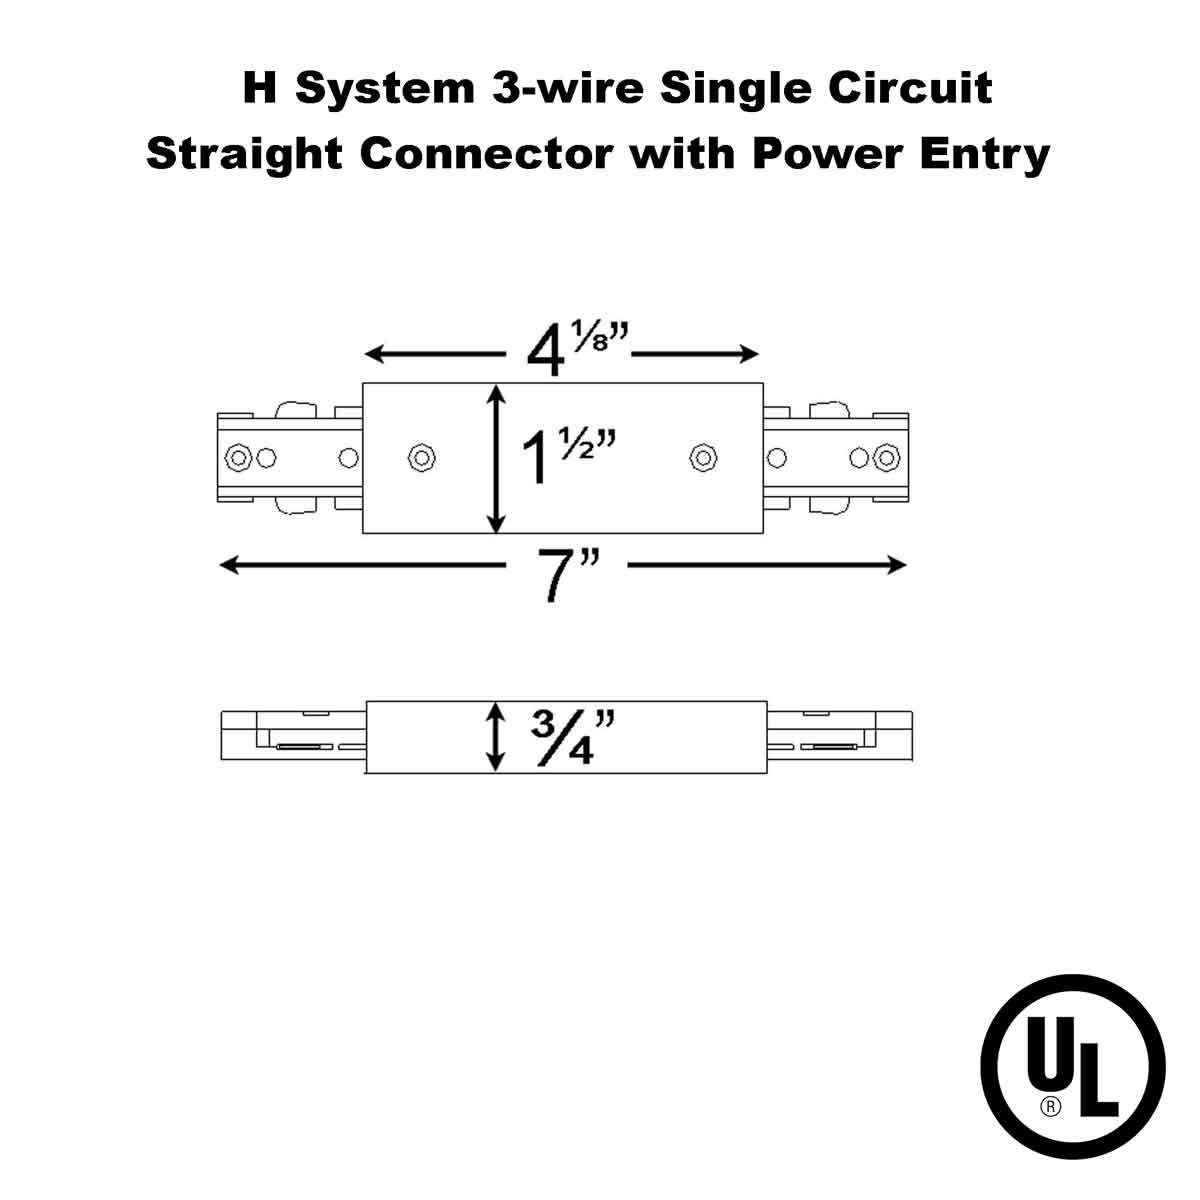 Straight Connector With Power Entry for Single Circuit